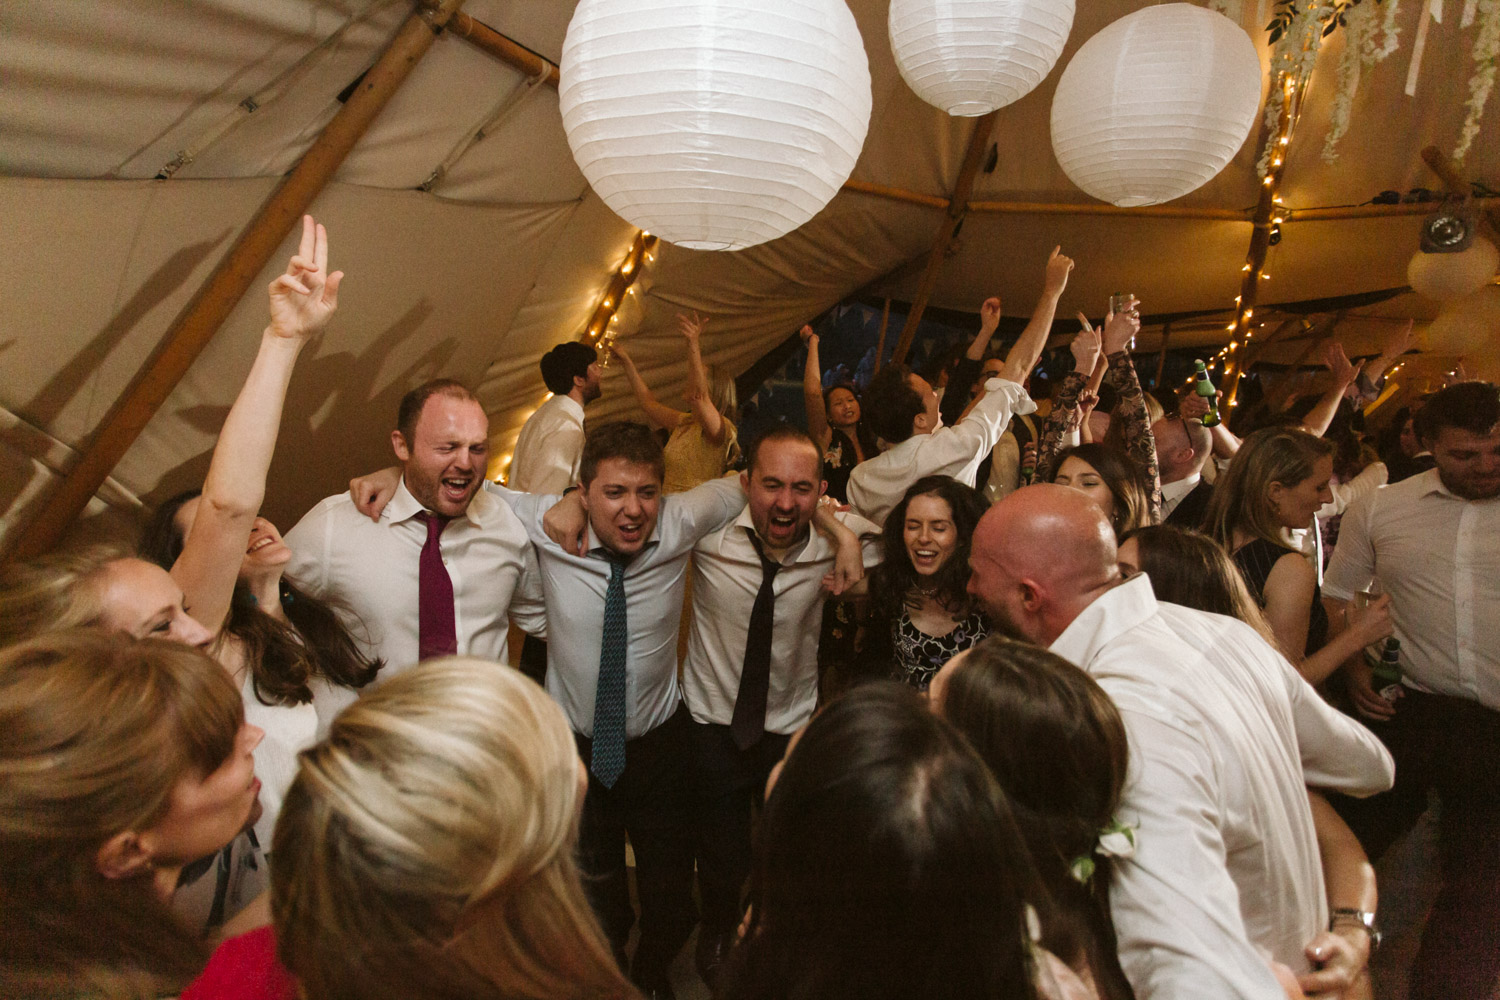 guests dancing in the tipi at night